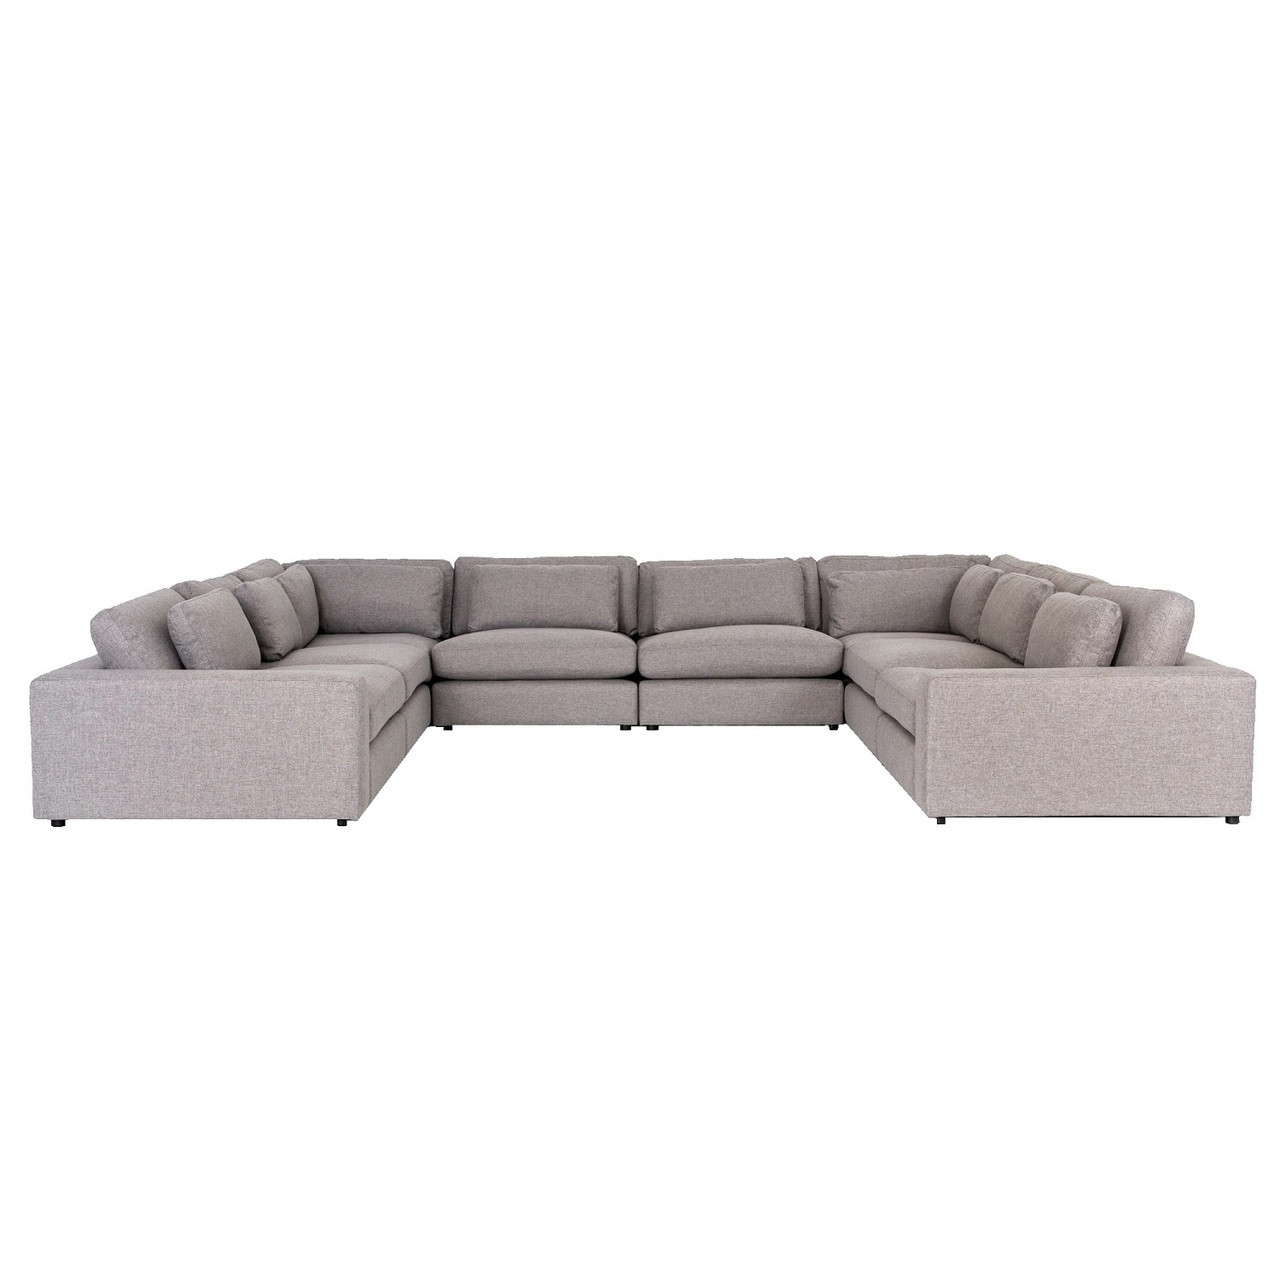 Bloor Contemporary Gray Fabric 8-Piece U-Shaped Sectional Sofa 170\